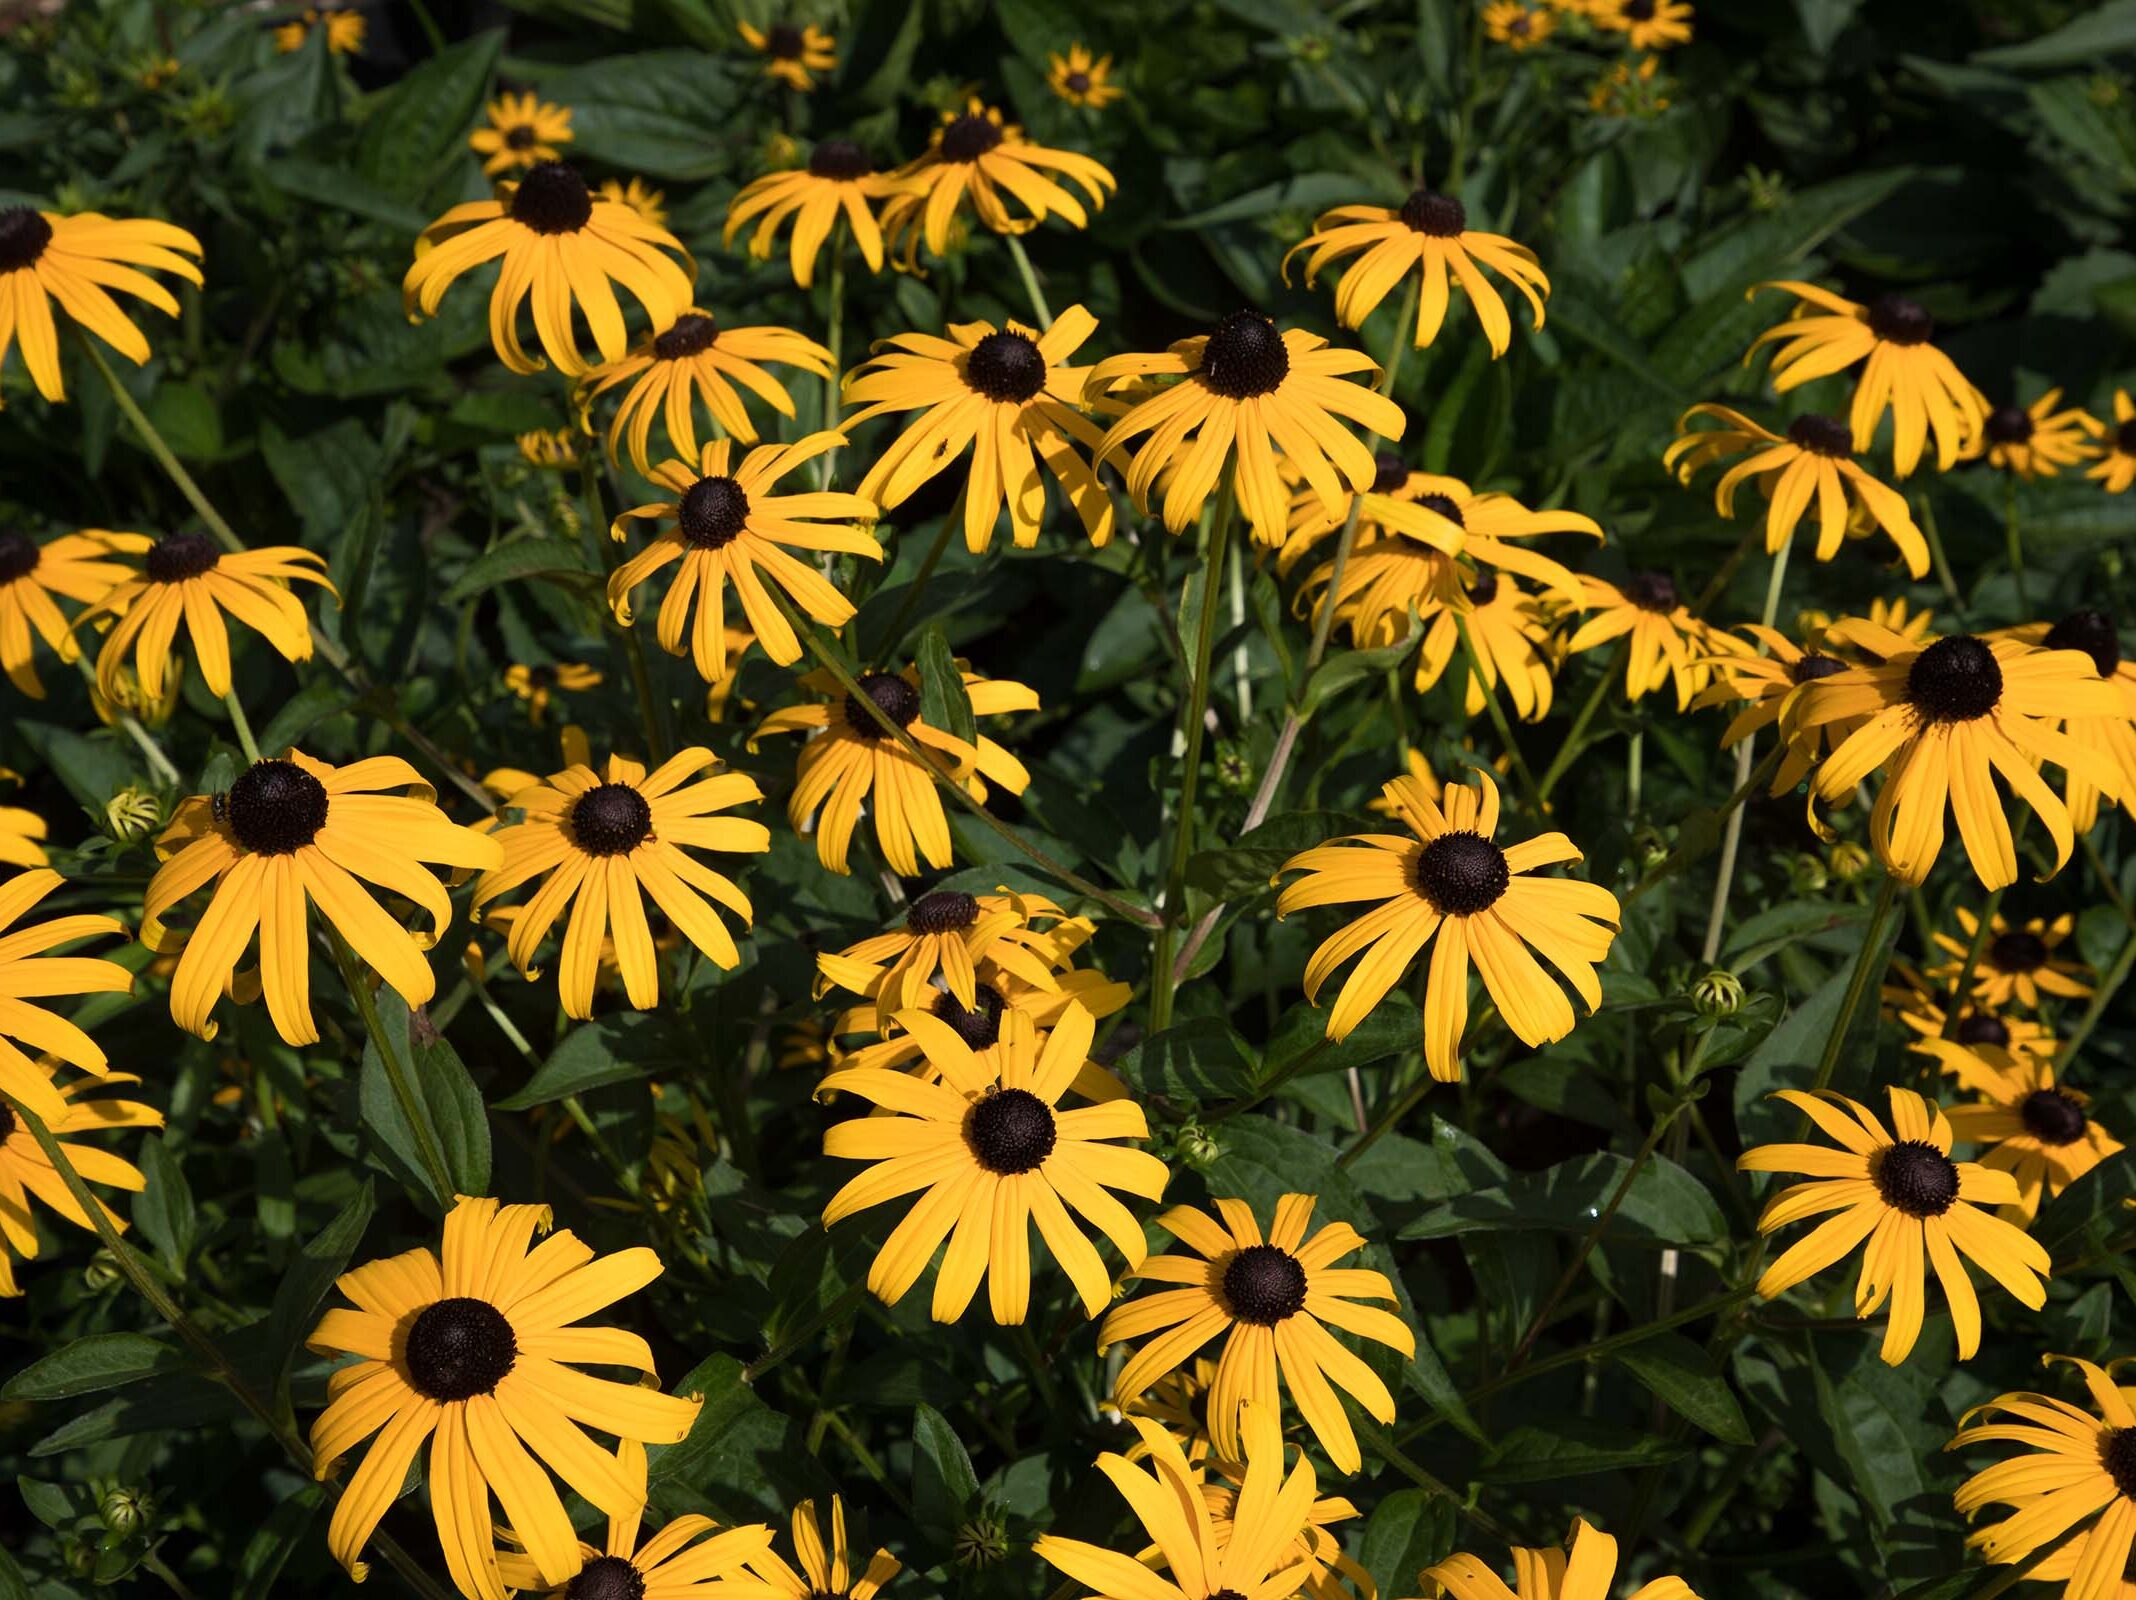 Yellow black eyed susans flowers stare at the sun in Hudson River Park